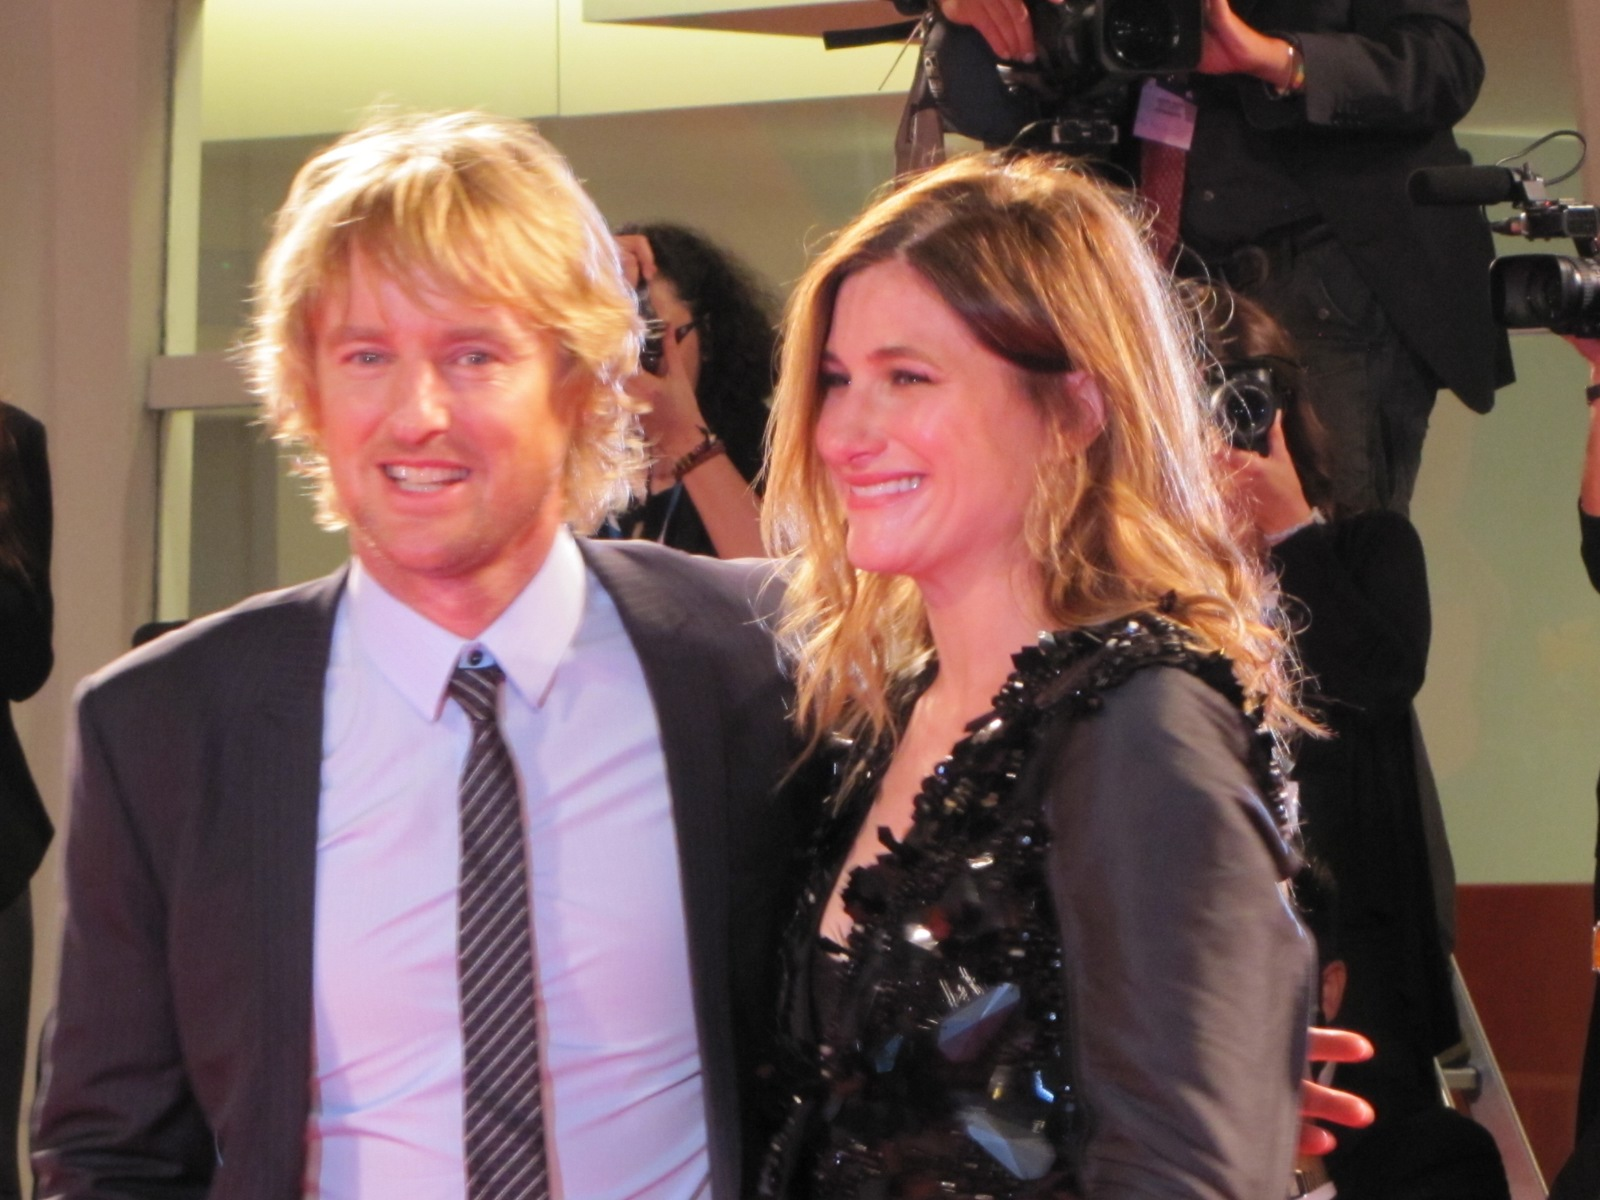 She's Funny That Way  - Owen Wilson e Louise Stratten sul red carpet a Venezia 2014